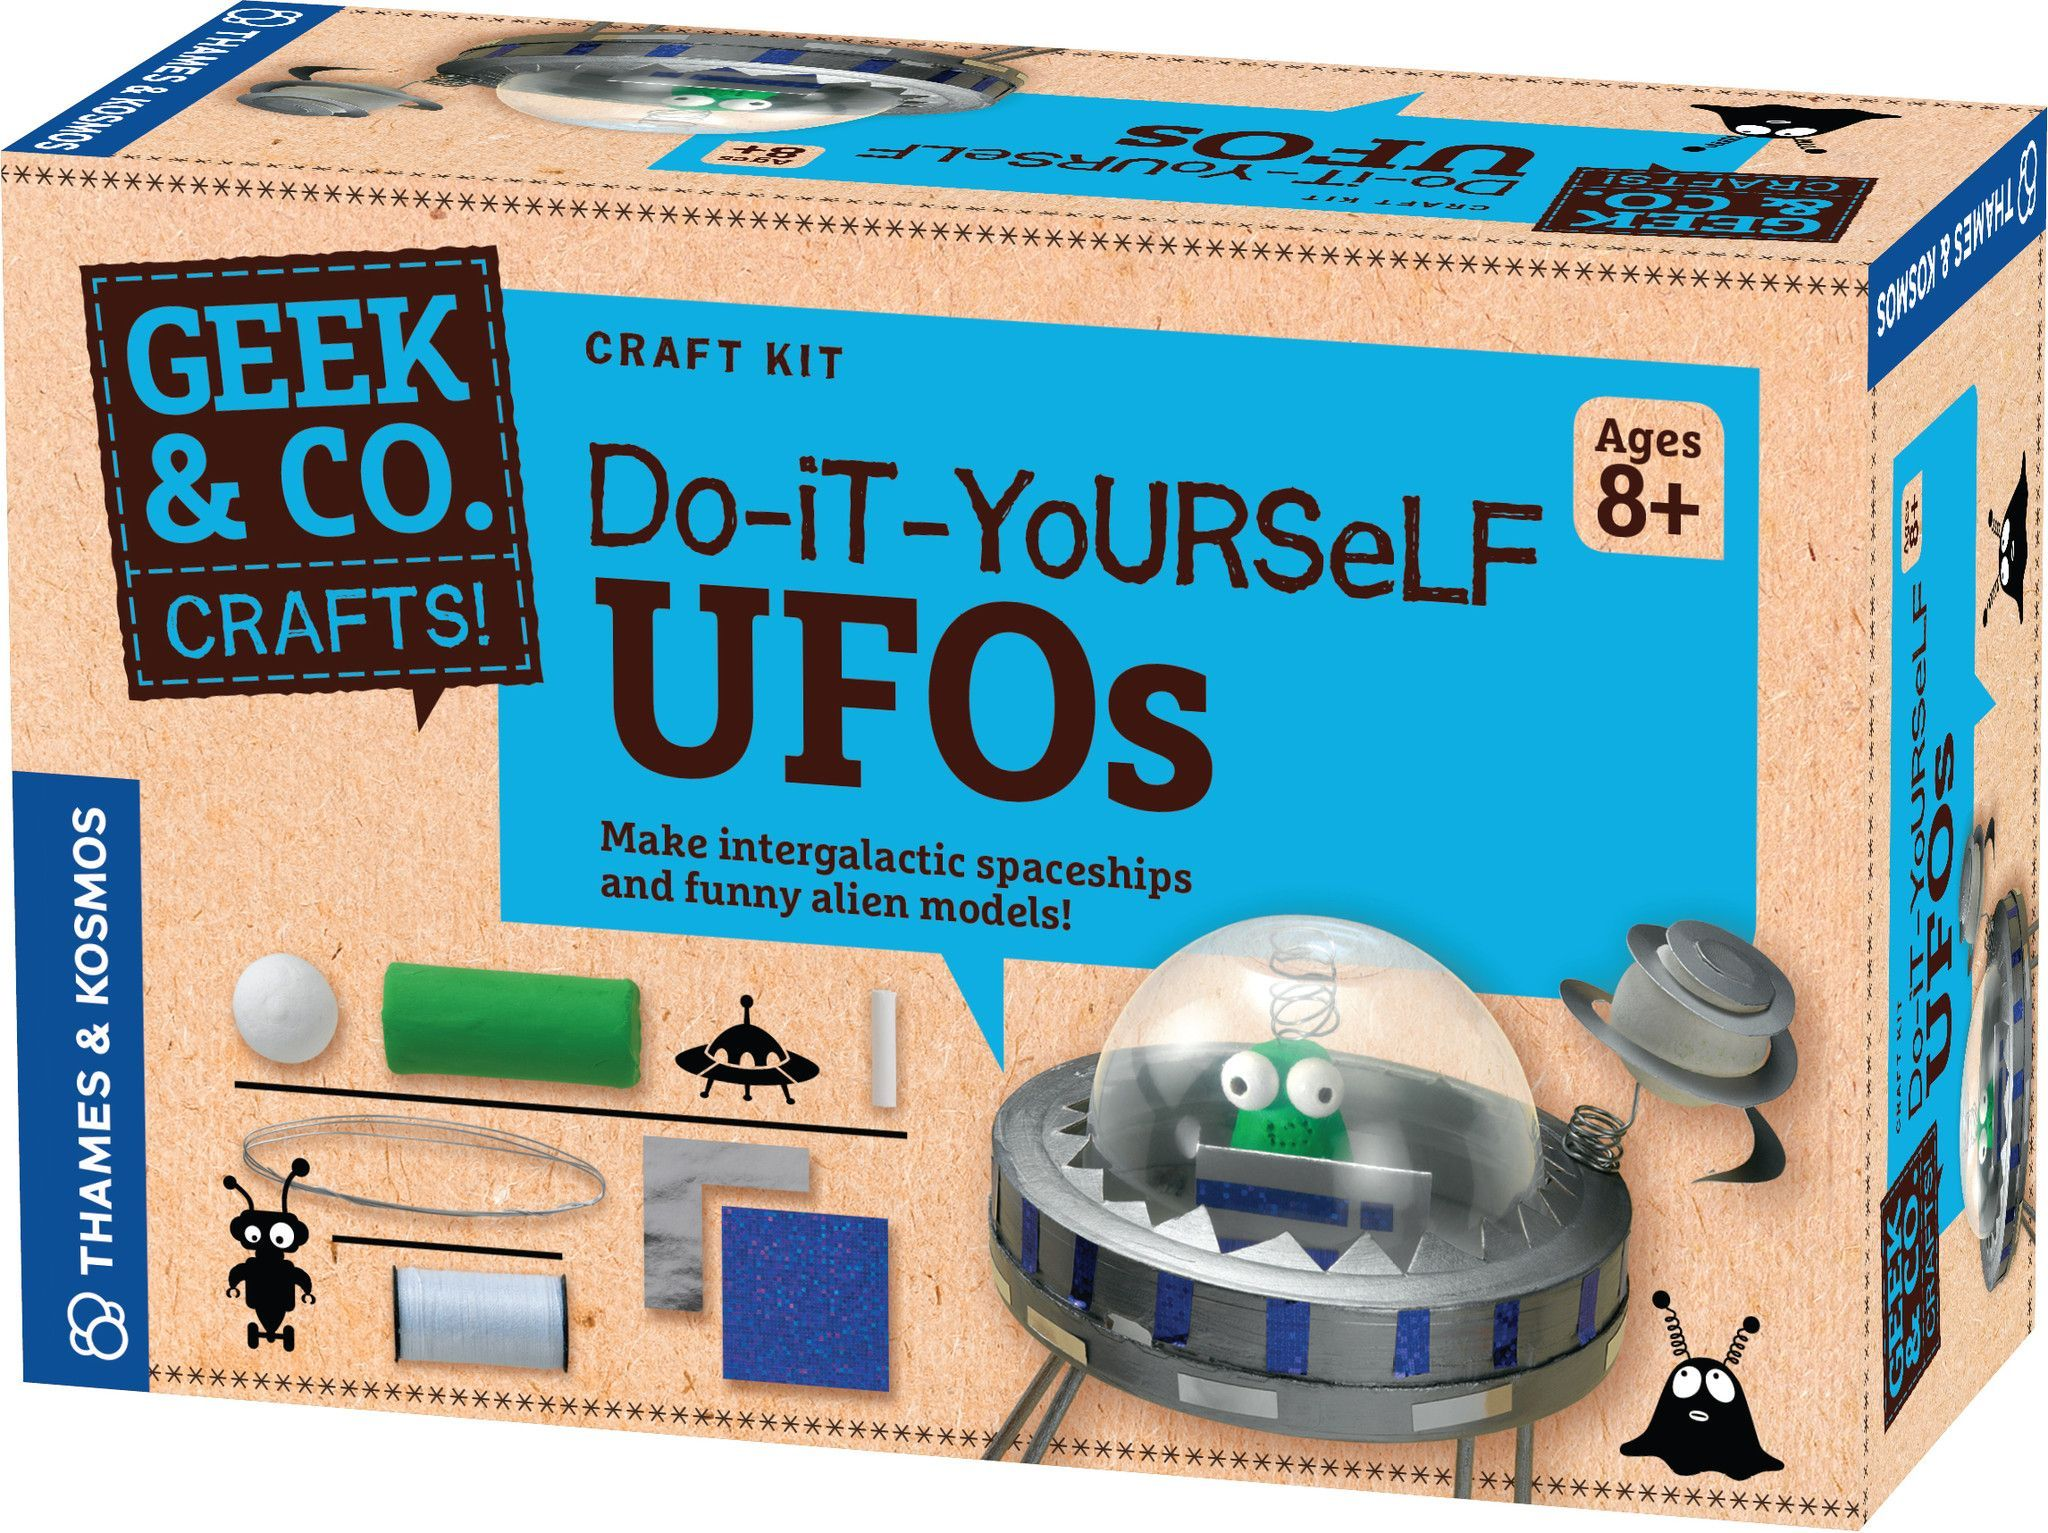 Do it yourself ufos craft kit science kits and products do it yourself ufos craft kit solutioingenieria Choice Image